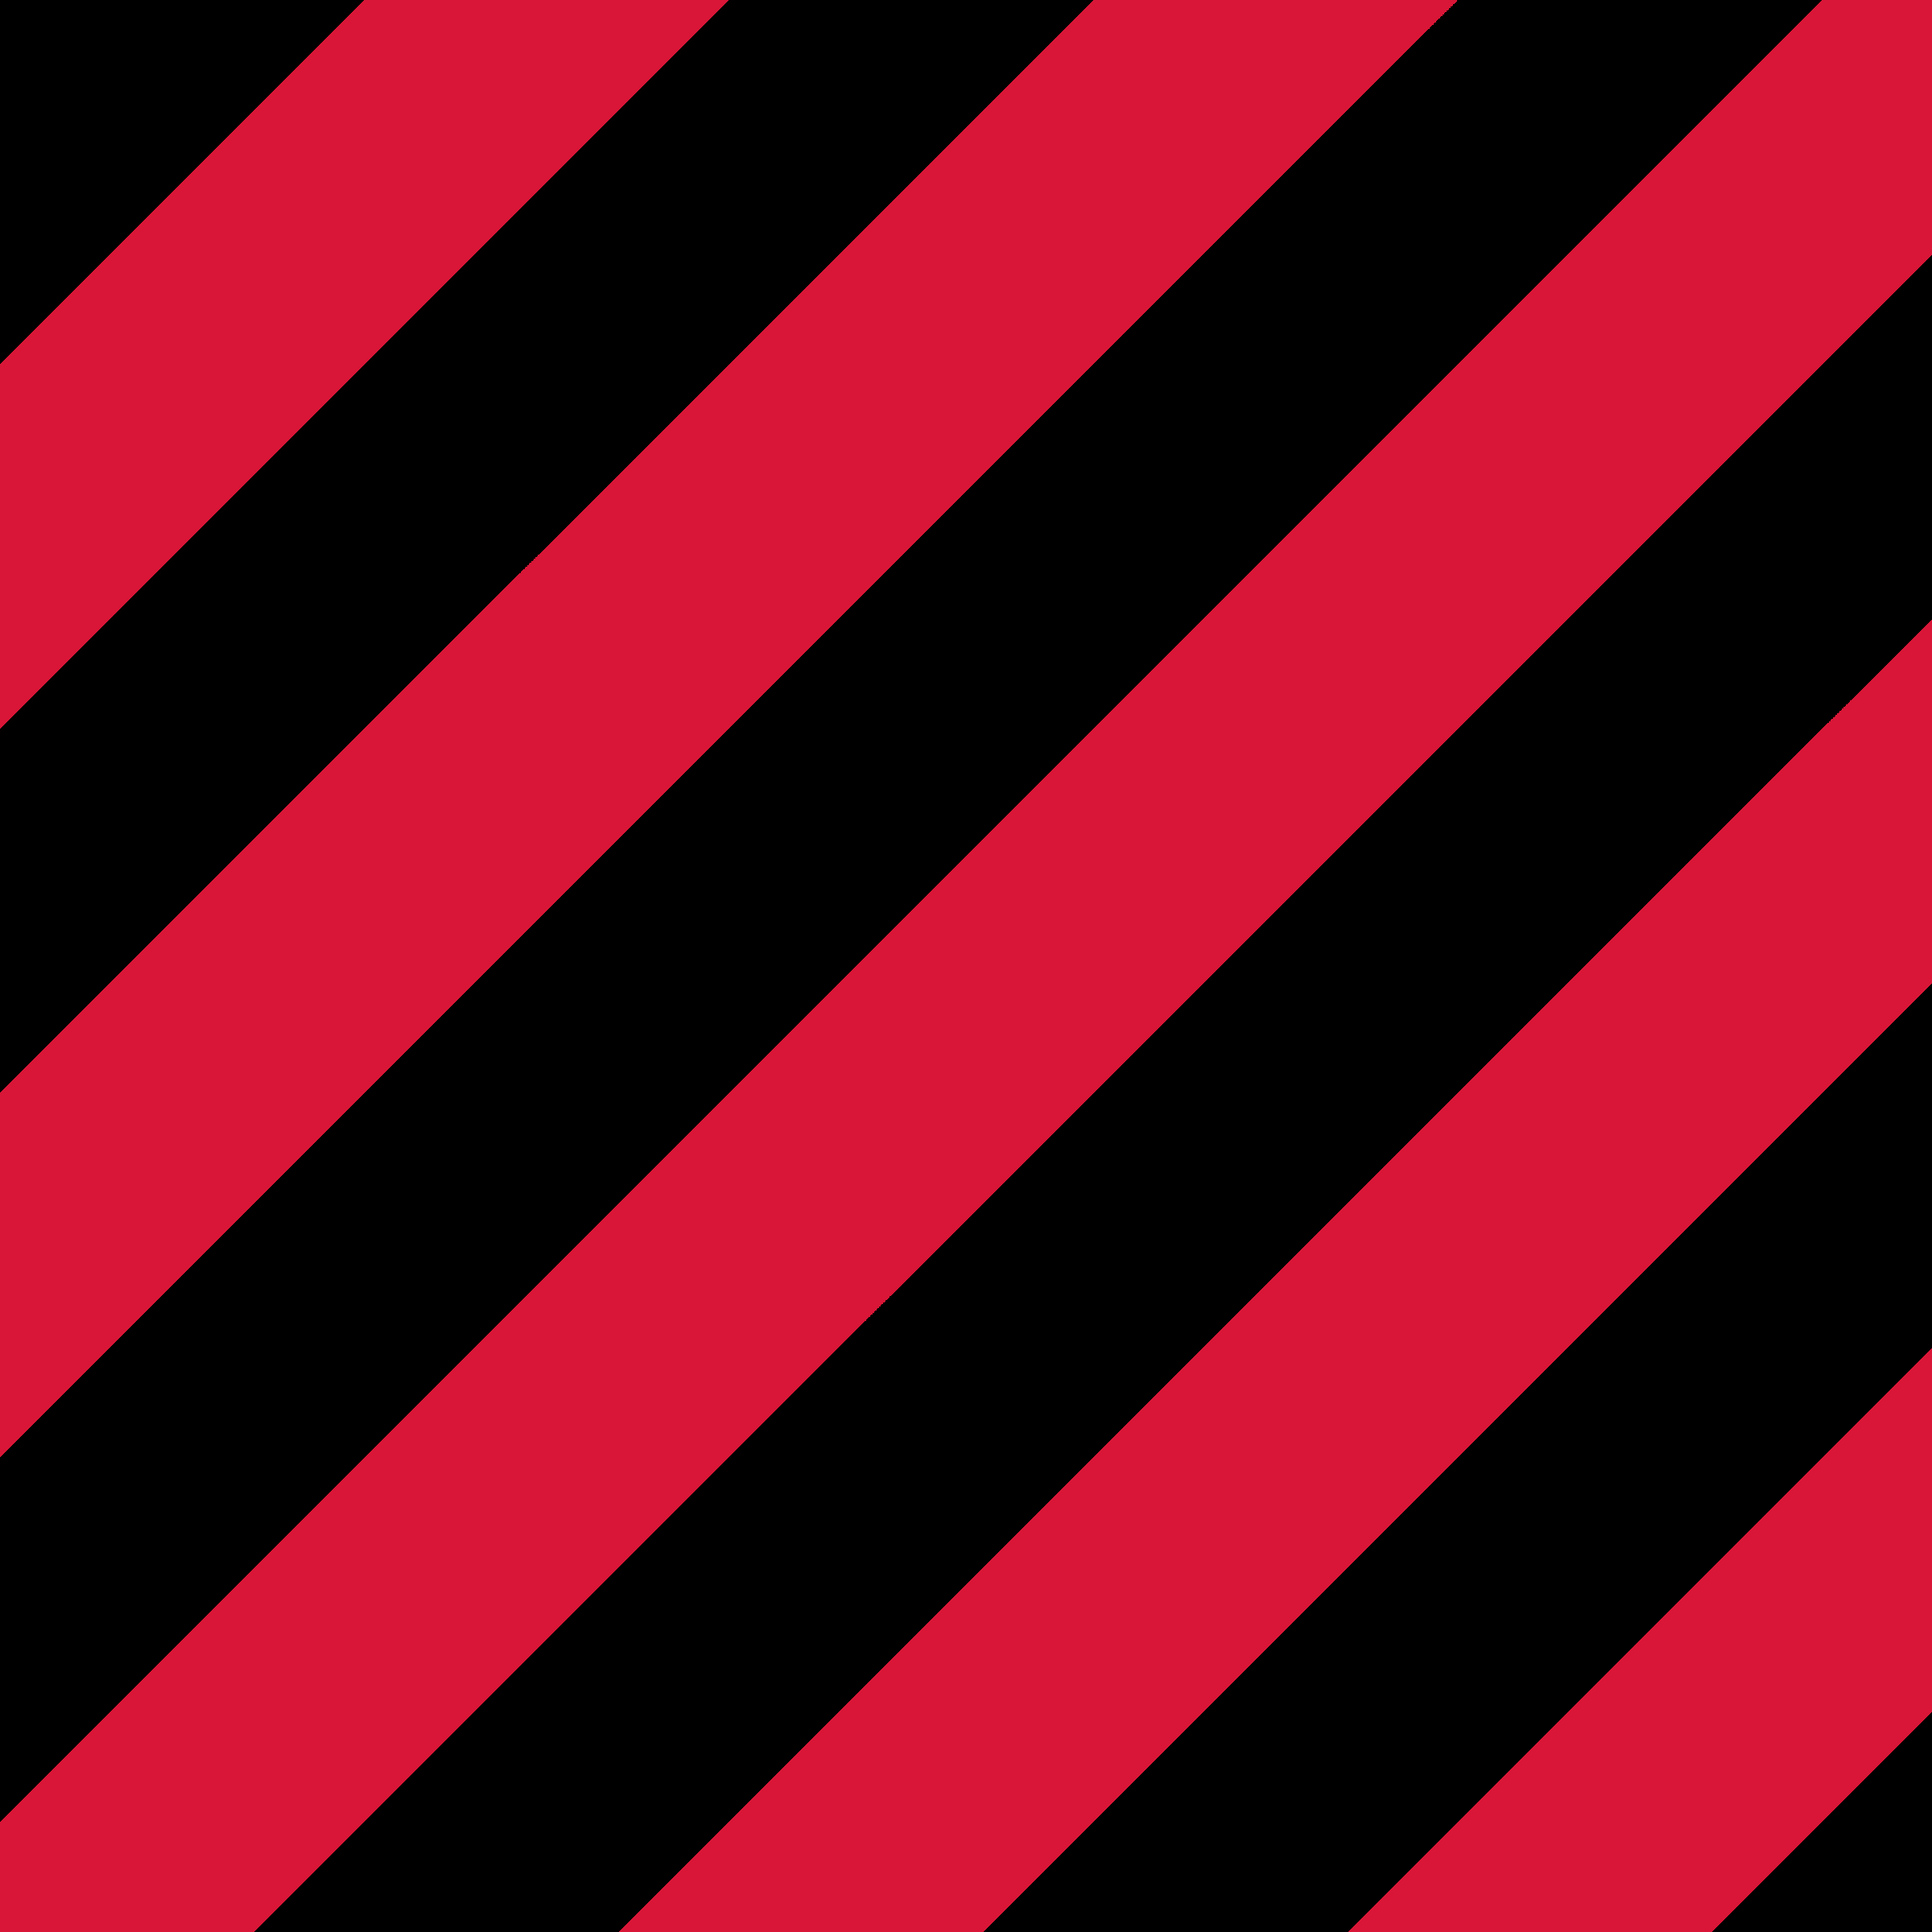 red and black gradient - photo #46